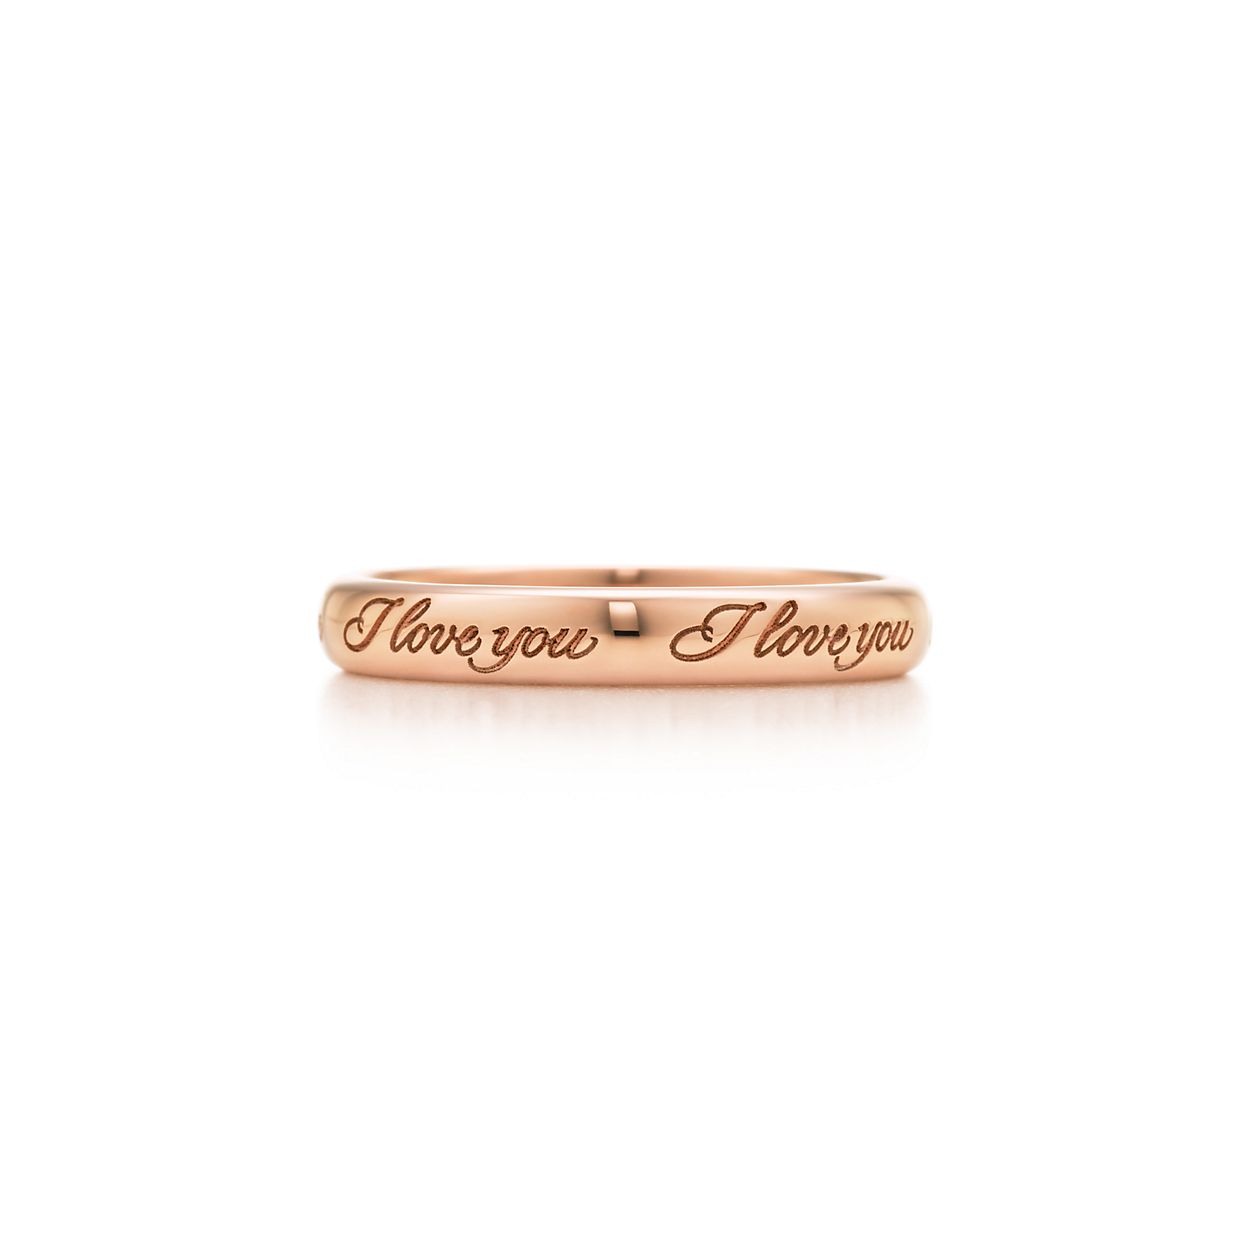 Tiffany Notes I Love You band ring in 18k rose gold, 3 mm wide - Size 8 1/2 Tiffany & Co.